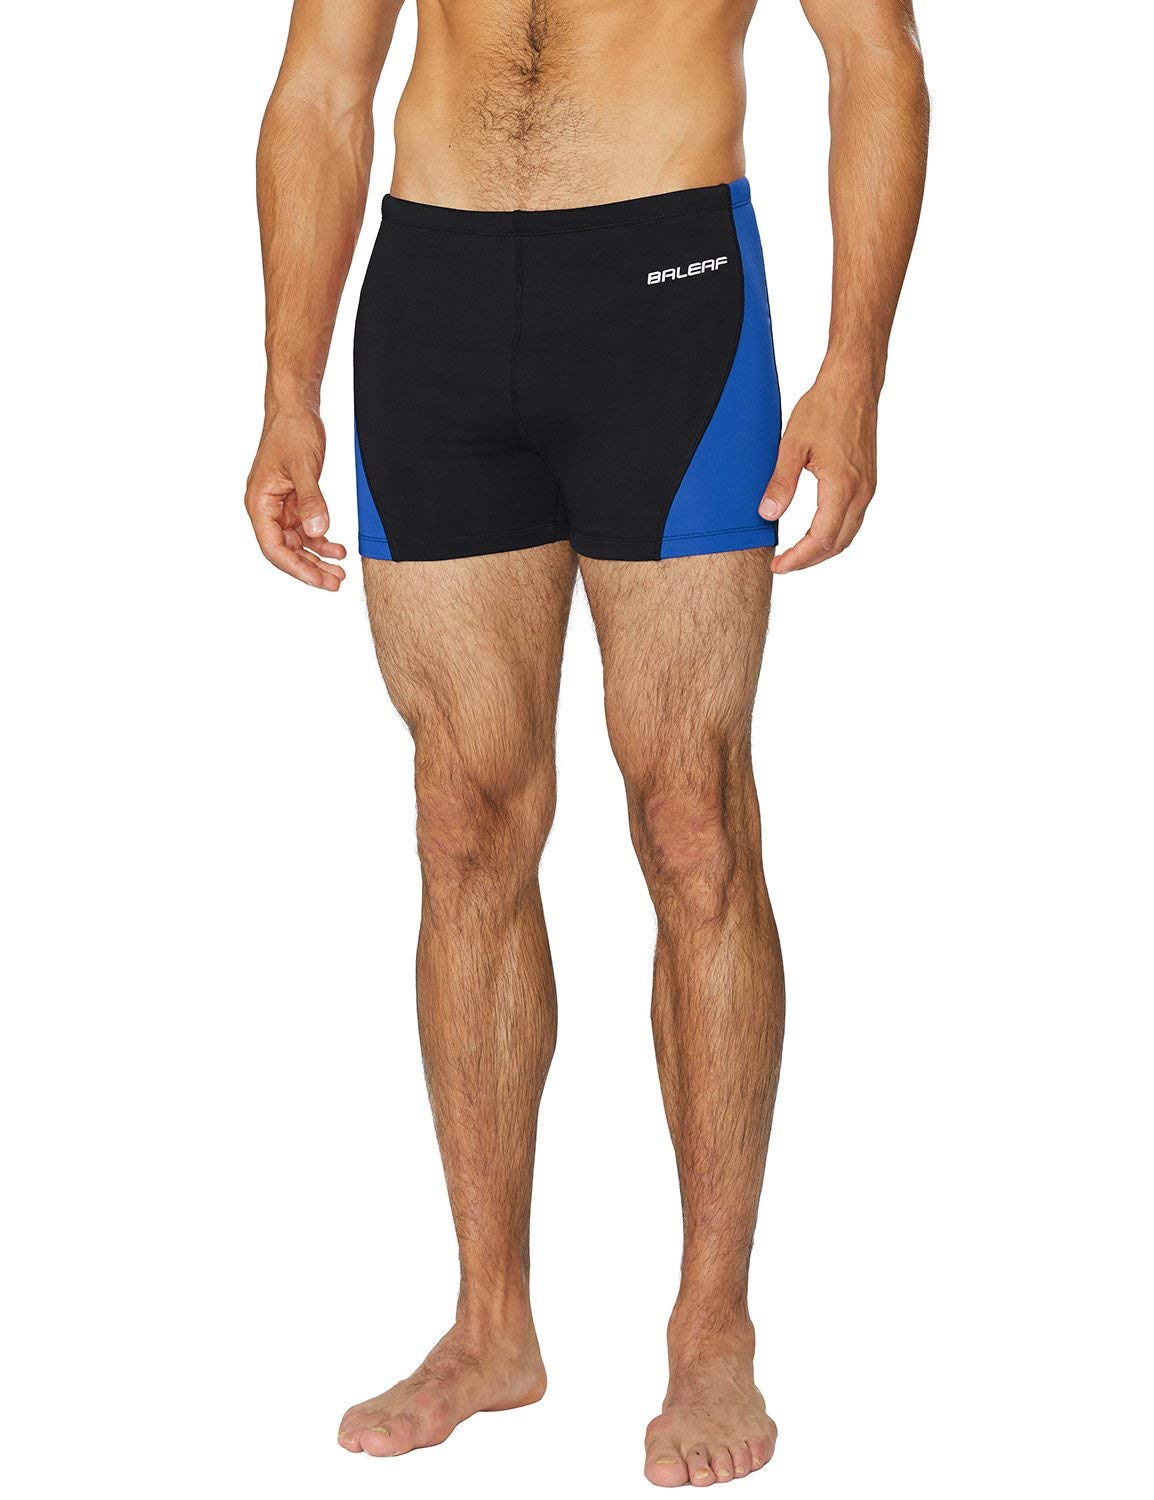 BALEAF Mens' Athletic Durable Training Polyester Quick Dry Compression Square Leg Jammers Swim Brief Swimsuit Black/Blue Size 34 by BALEAF